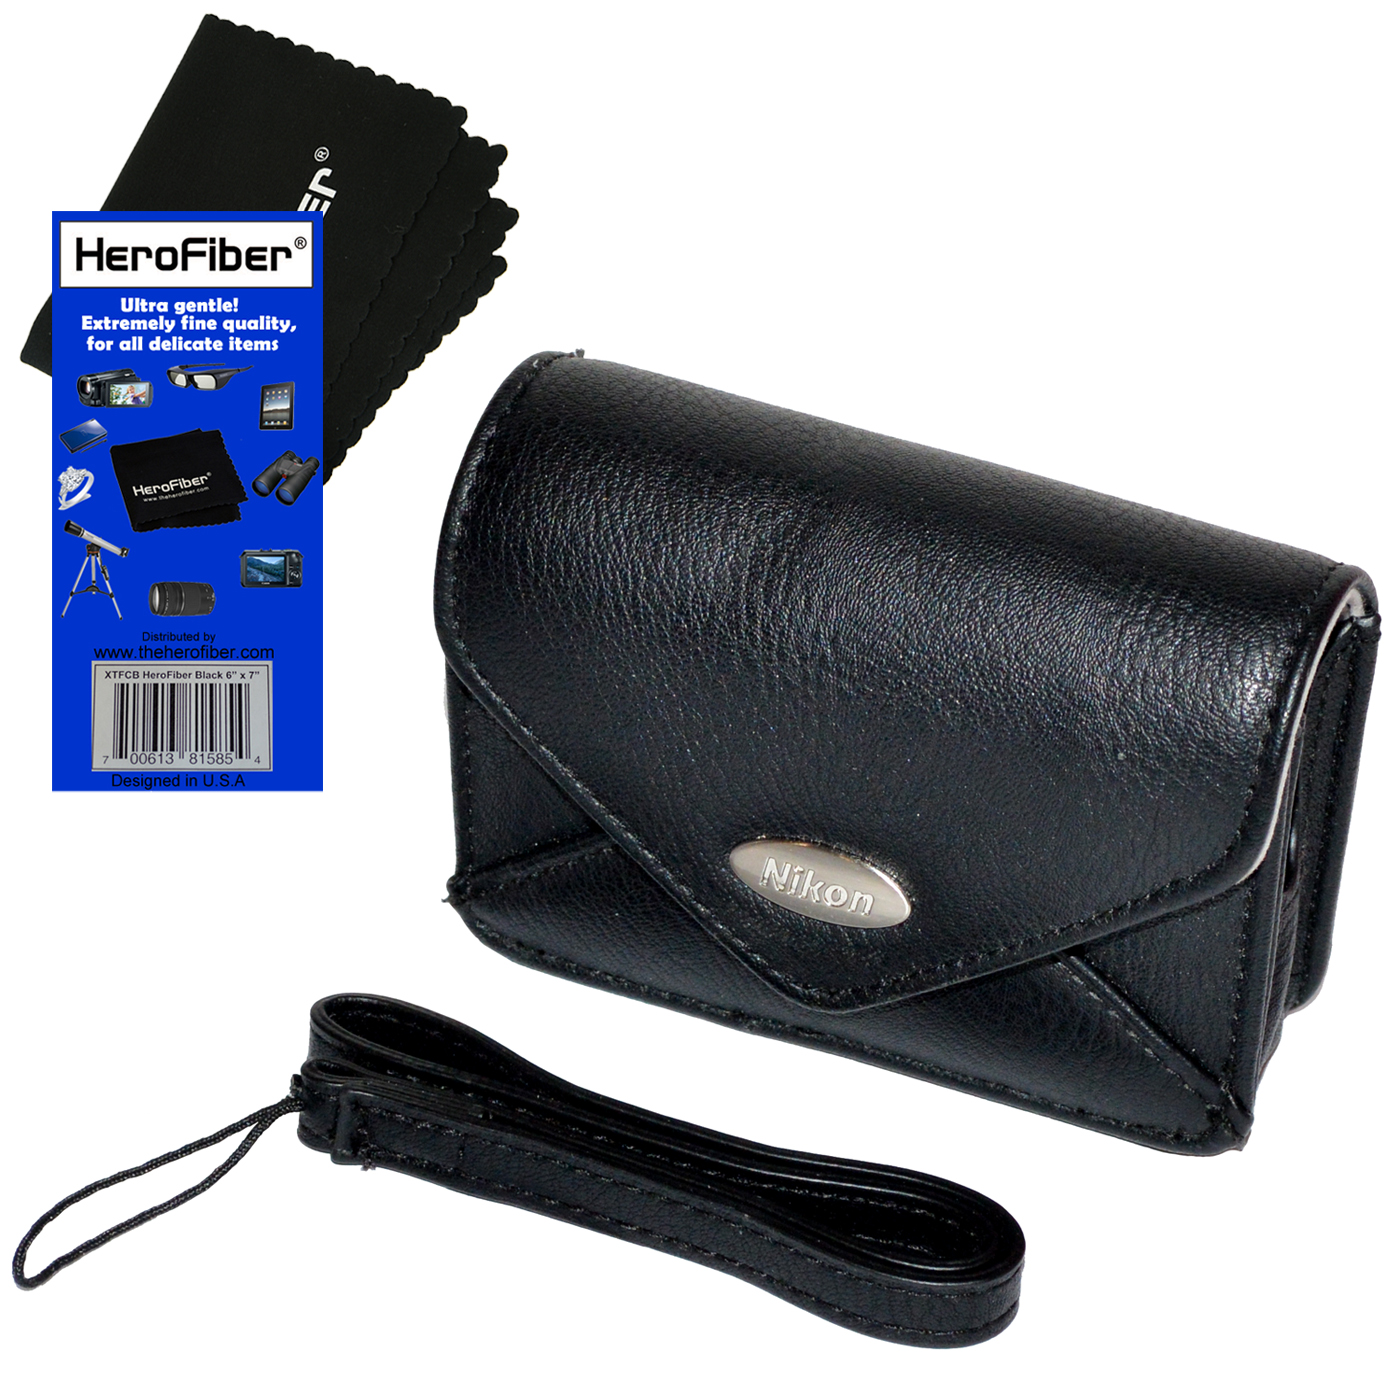 Nikon Leather Like Carrying Case with Wrist Strap for Nikon Coolpix S4100, S4200, S4300, S5300, S6100, S6200, S6300, S6800 & S7000 Cameras + HeroFiber® Ultra Gentle Cleaning Cloth